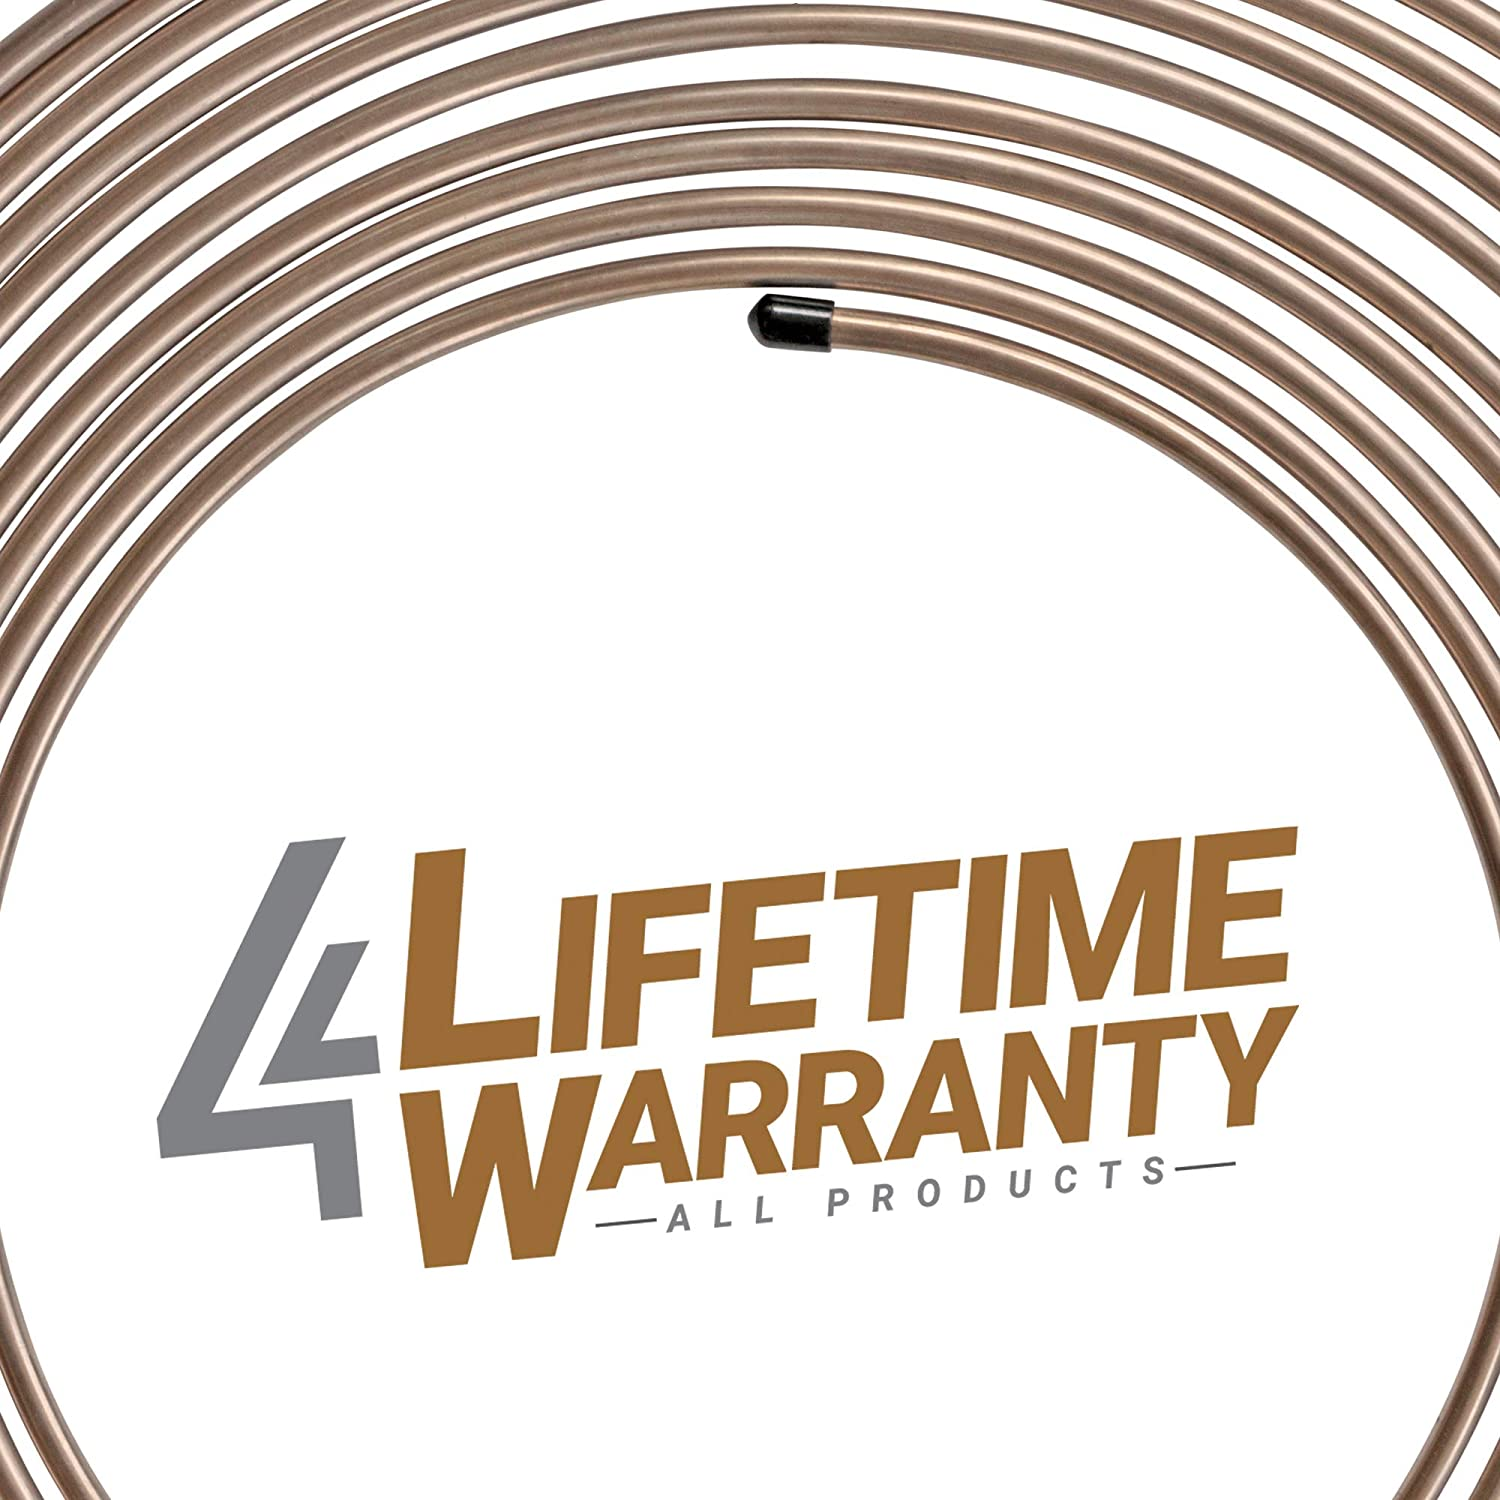 2 Coils 32 SKU Fitting Assortment 25ft 3//16 and 1//4 4LIFETIMELINES Nickel Copper